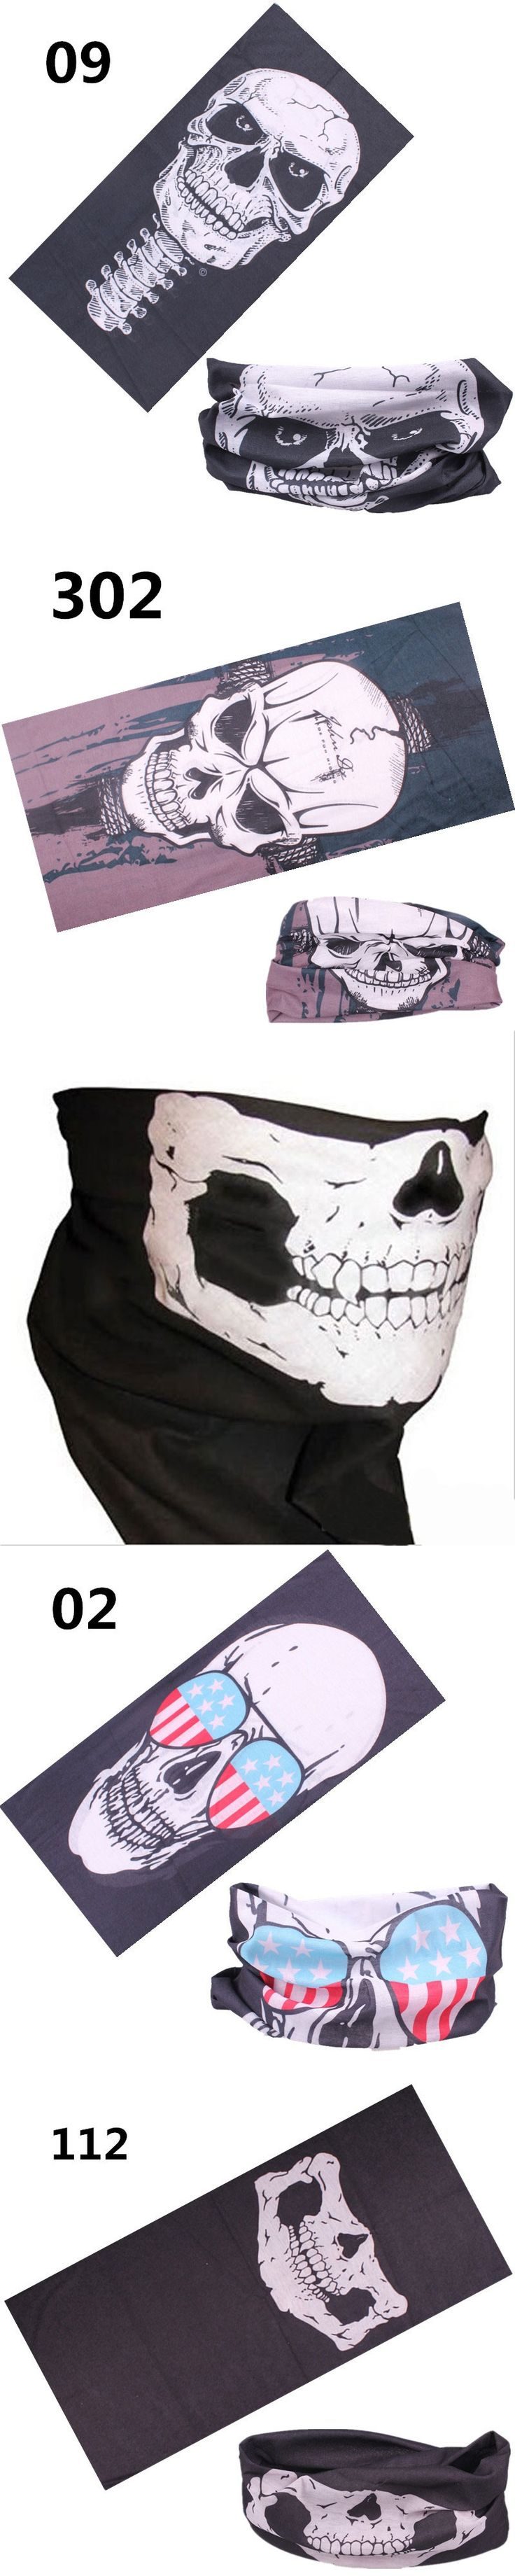 Skull Half Face Scarves Skeleton Sport Headband for Motorcycling Cycling Paintball Horror Mask Scarf for Halloween